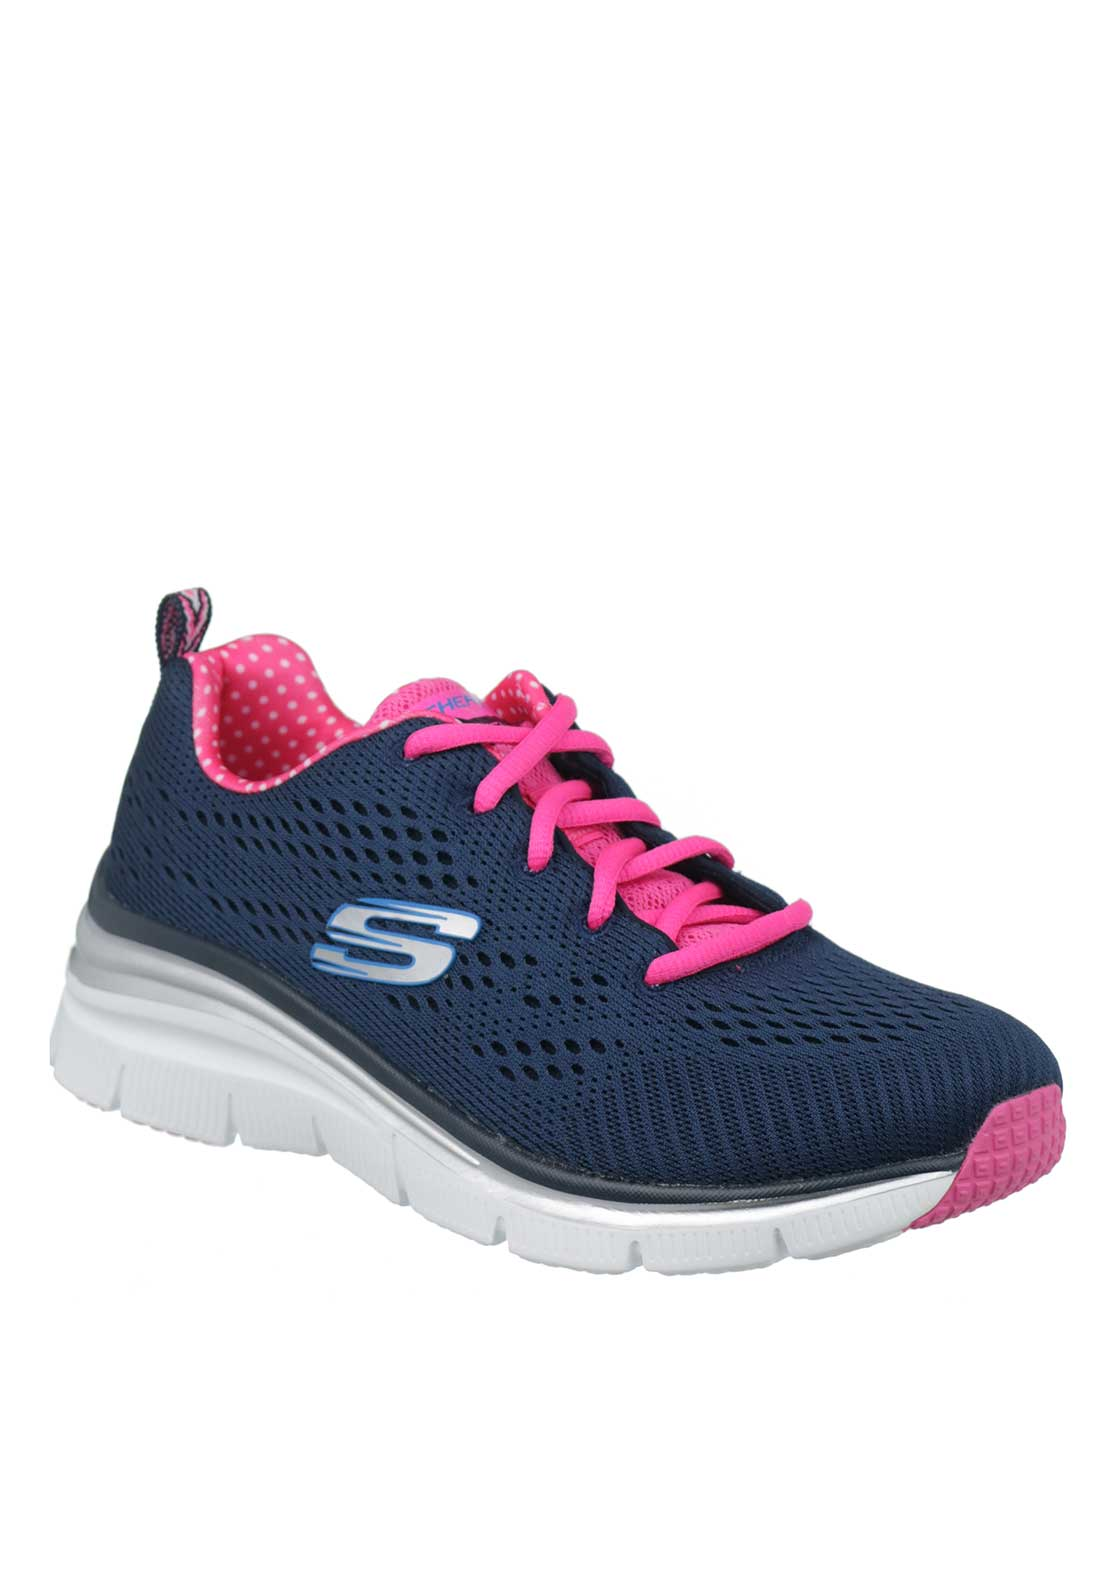 Skechers Womens Fashion Fit Statement Piece Trainers, Navy and Pink